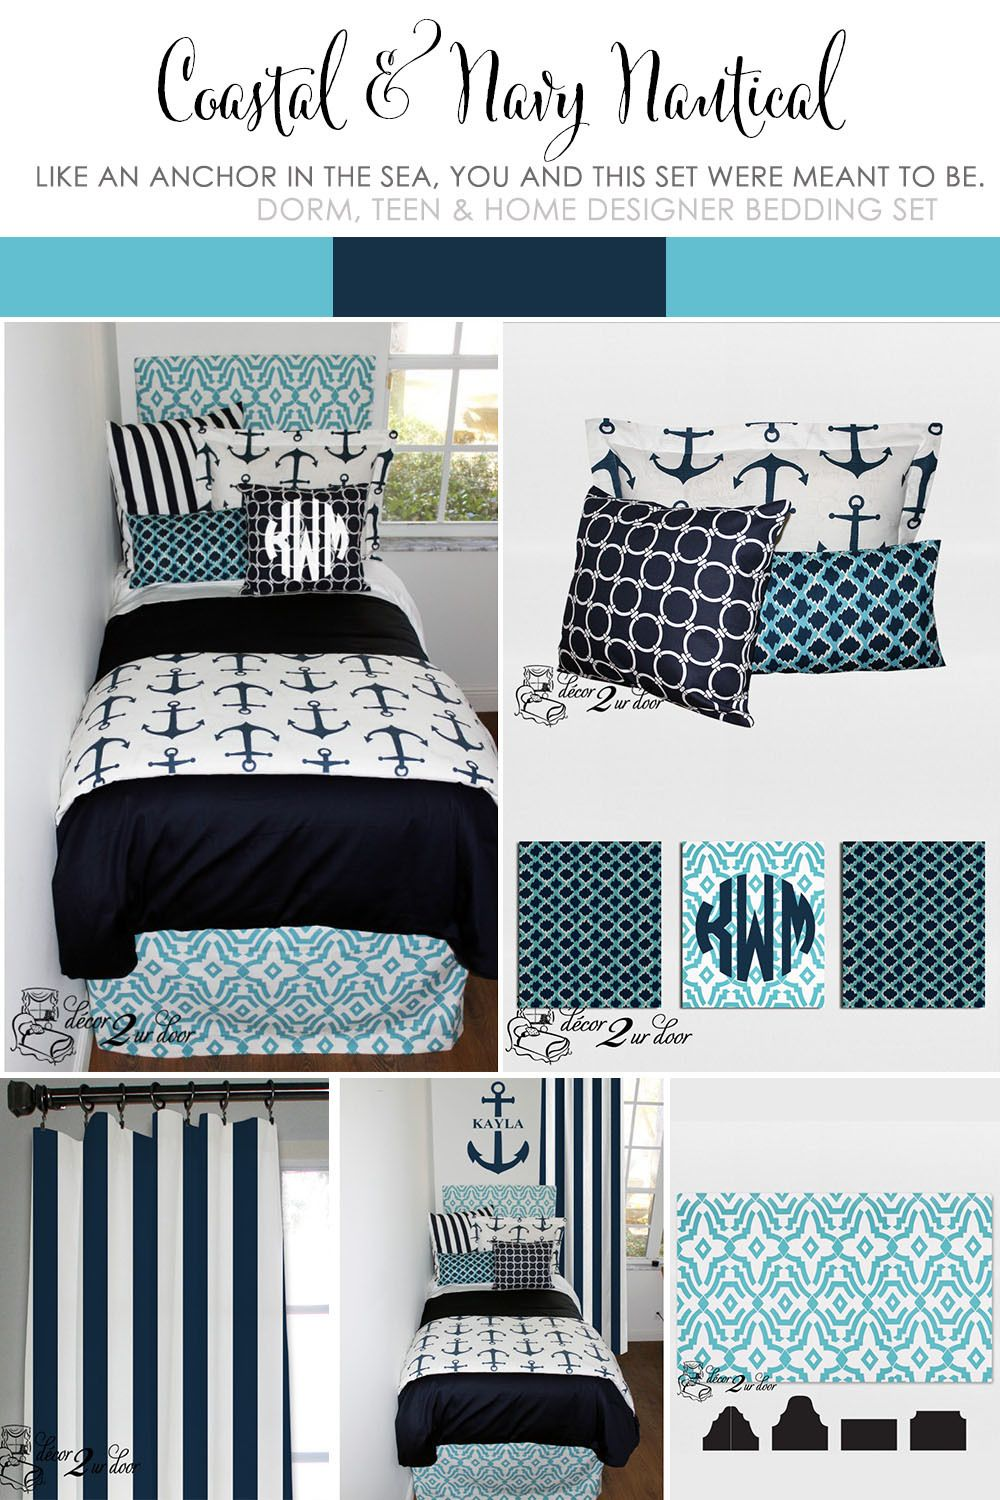 2019 year look- Dorm Nautical-Inspired Design